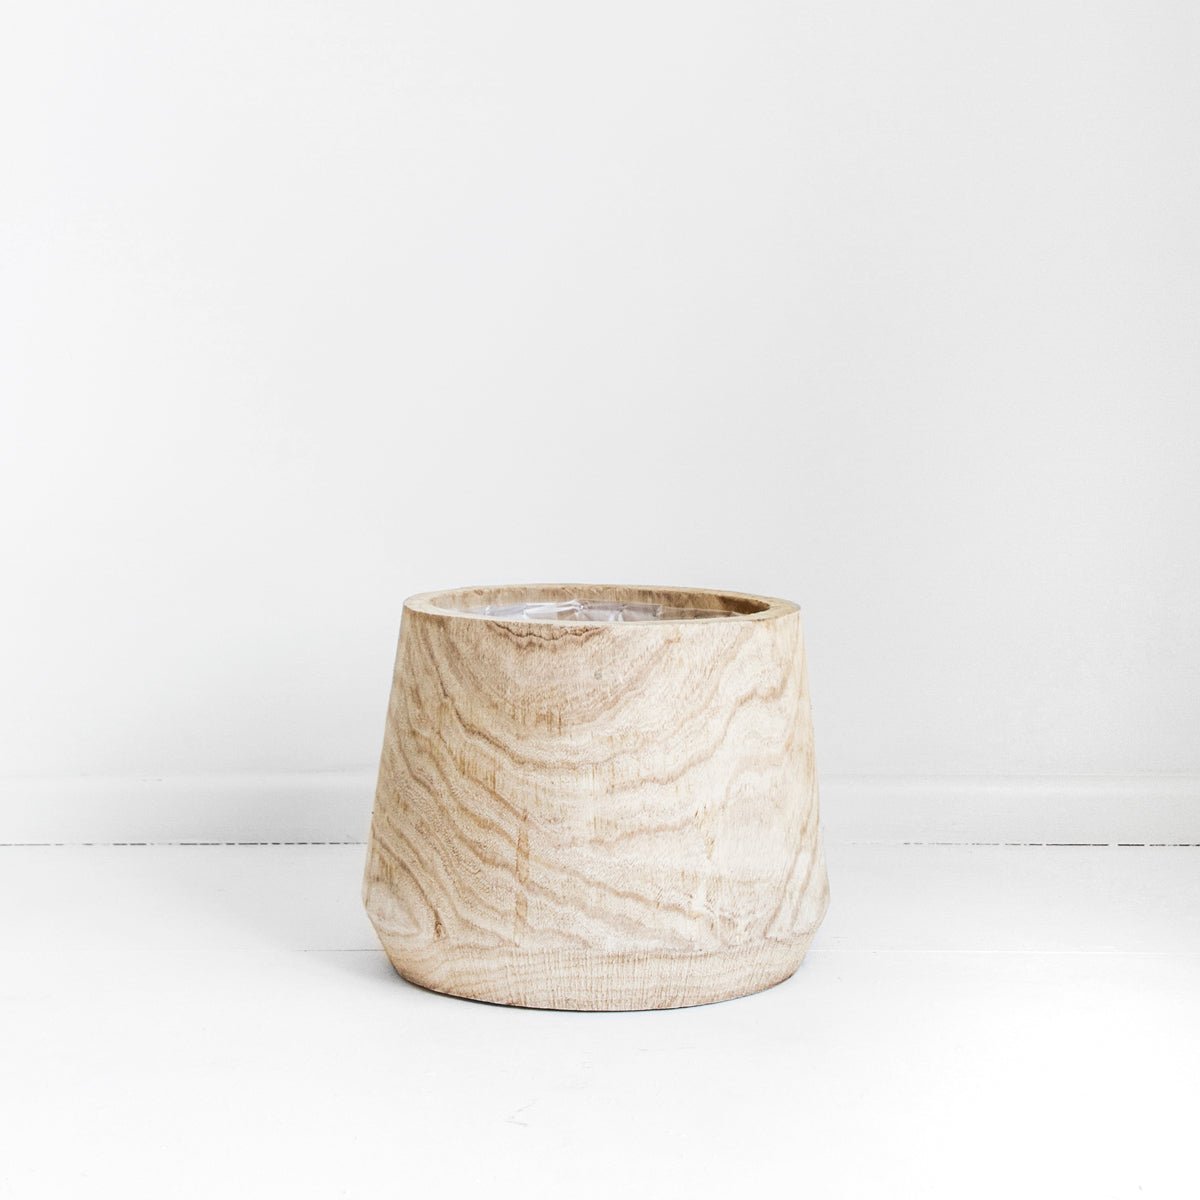 RAW TIMBER TUB POT - LARGE